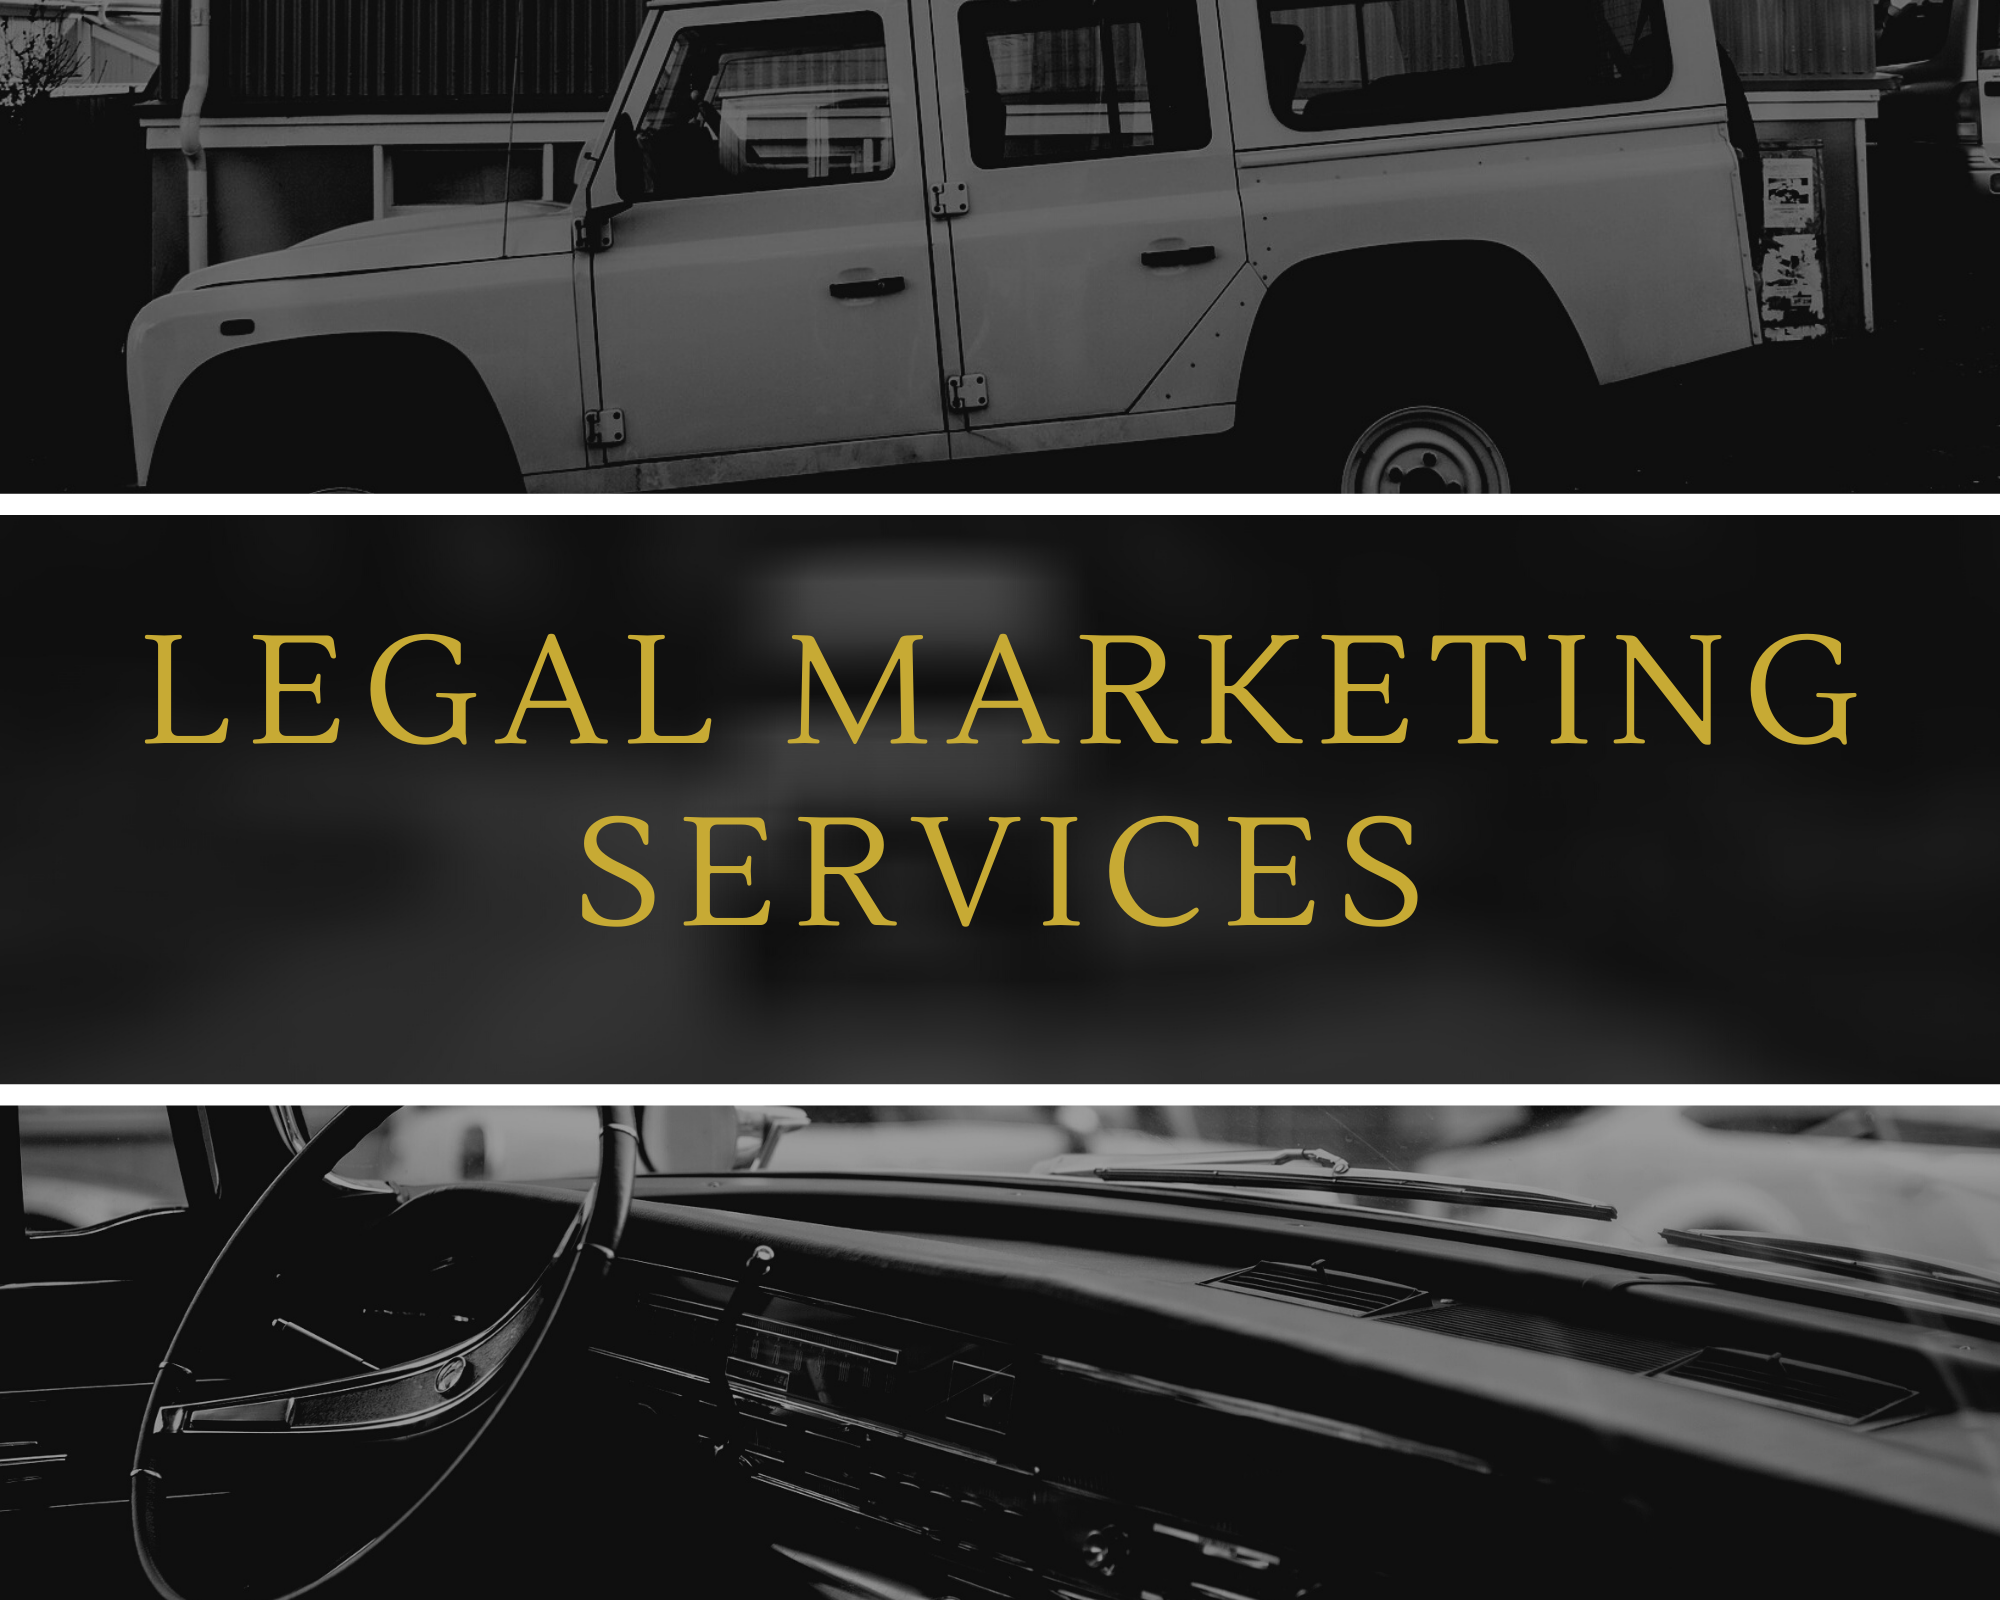 Legal marketing services